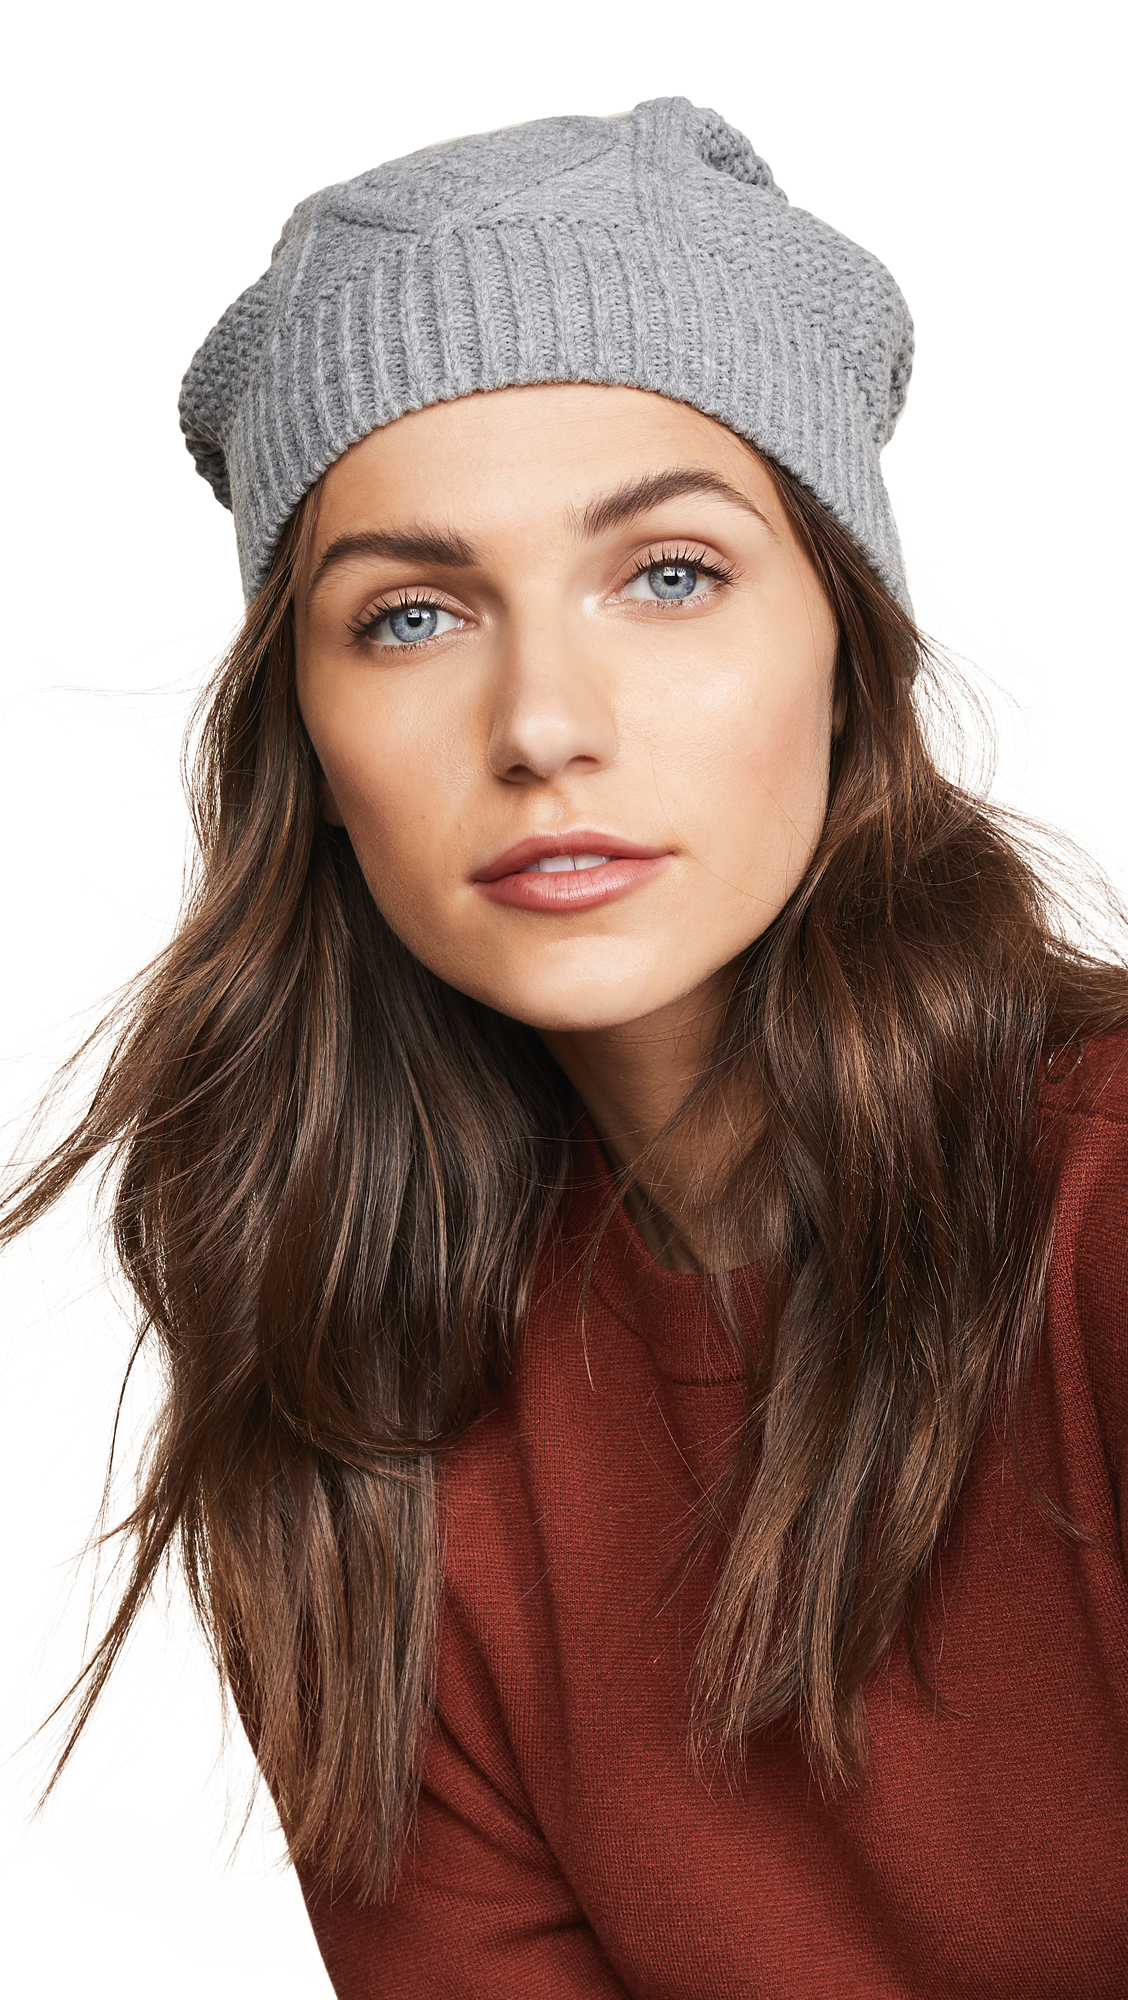 PLUSH Cable Knit Fleece Lined Beanie in Heather Gray